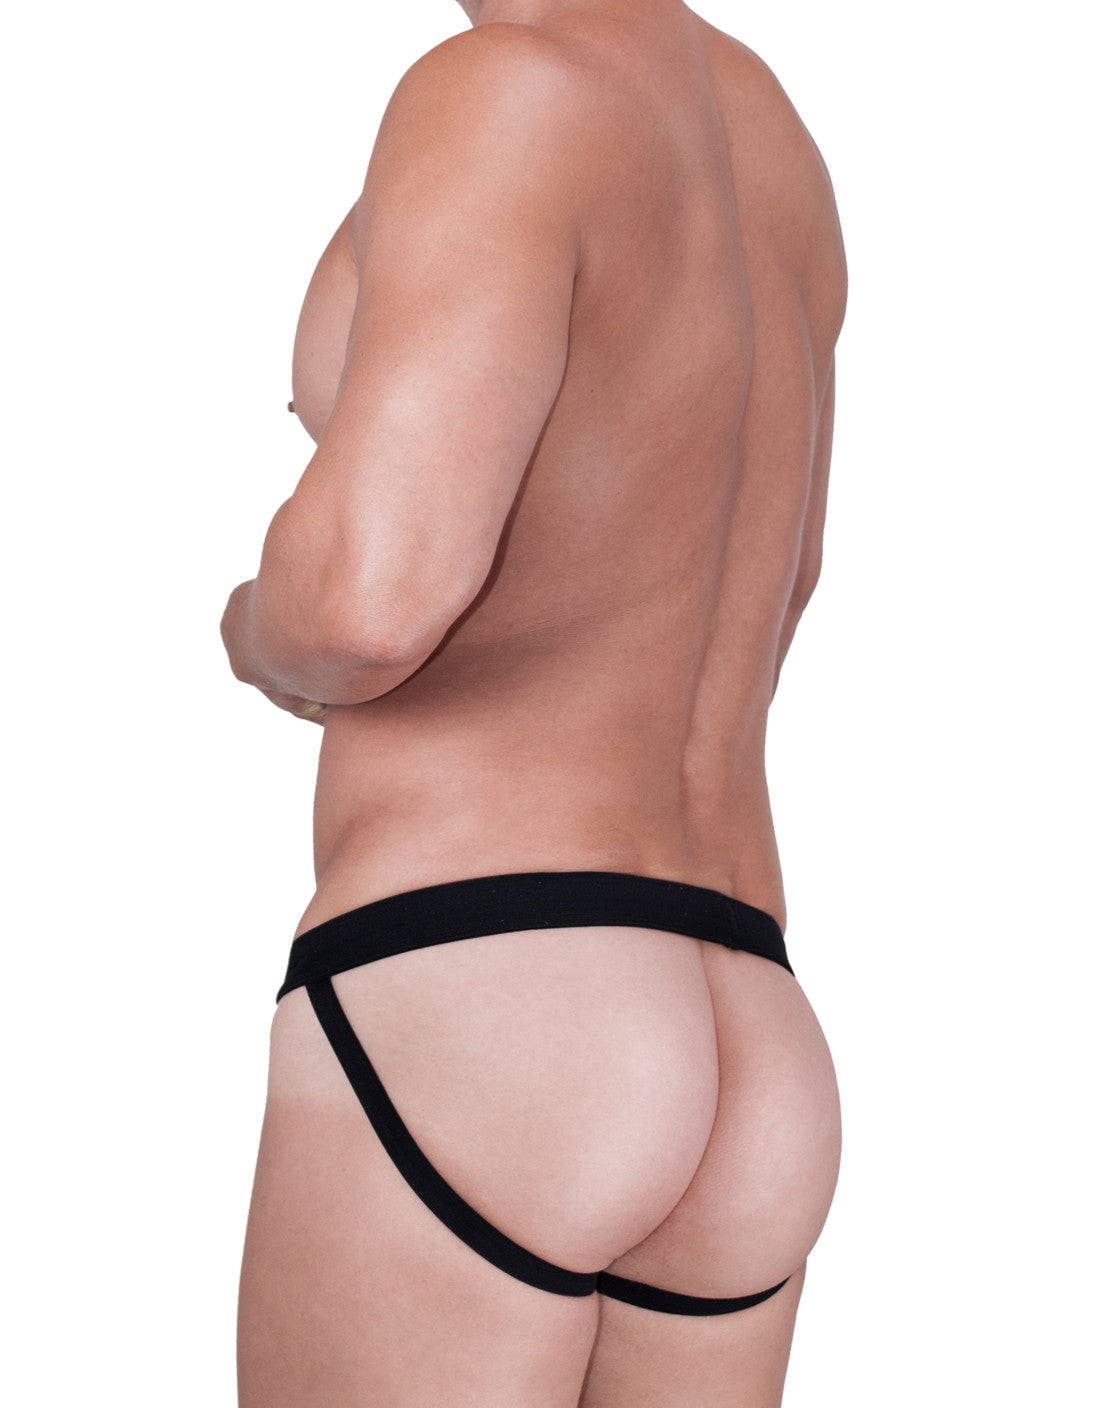 WildmanT Raw Sport Stripe Jockstrap with Duraband Waistband Red - Big Penis Underwear, WildmanT - WildmanT